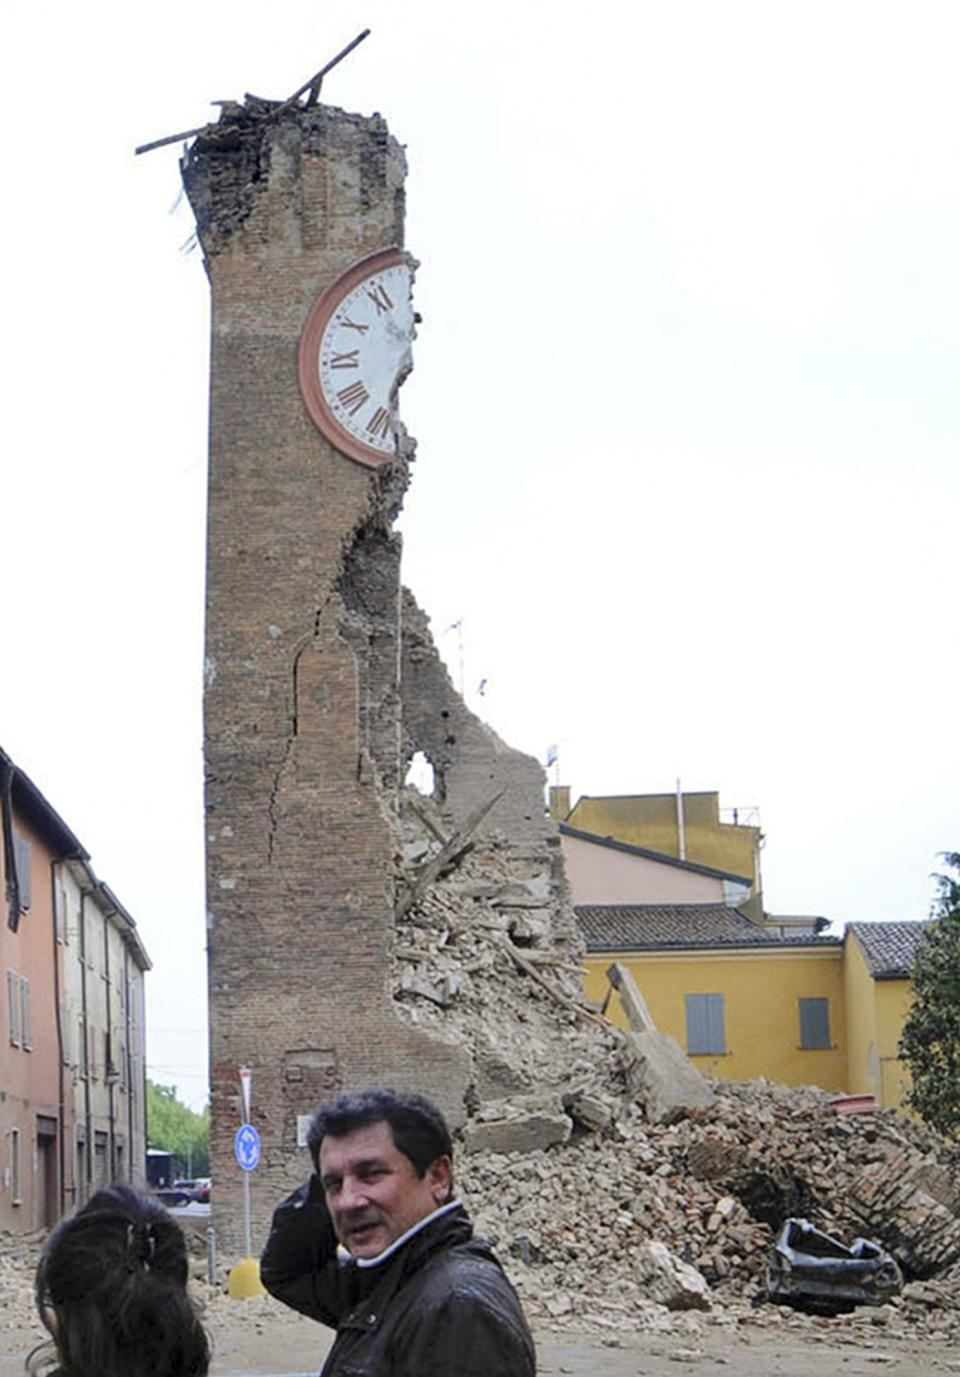 The damaged medieval clock tower of Finale Emilia, Italy, Sunday, May 20, 2012, following the magnitude 6.0 earthquake that shook northern Italy early Sunday and literally cut the tower in two.  A second quake on Sunday afternoon tore it down completely. (AP Photo/Gianfilippo Oggioni, Lapresse)